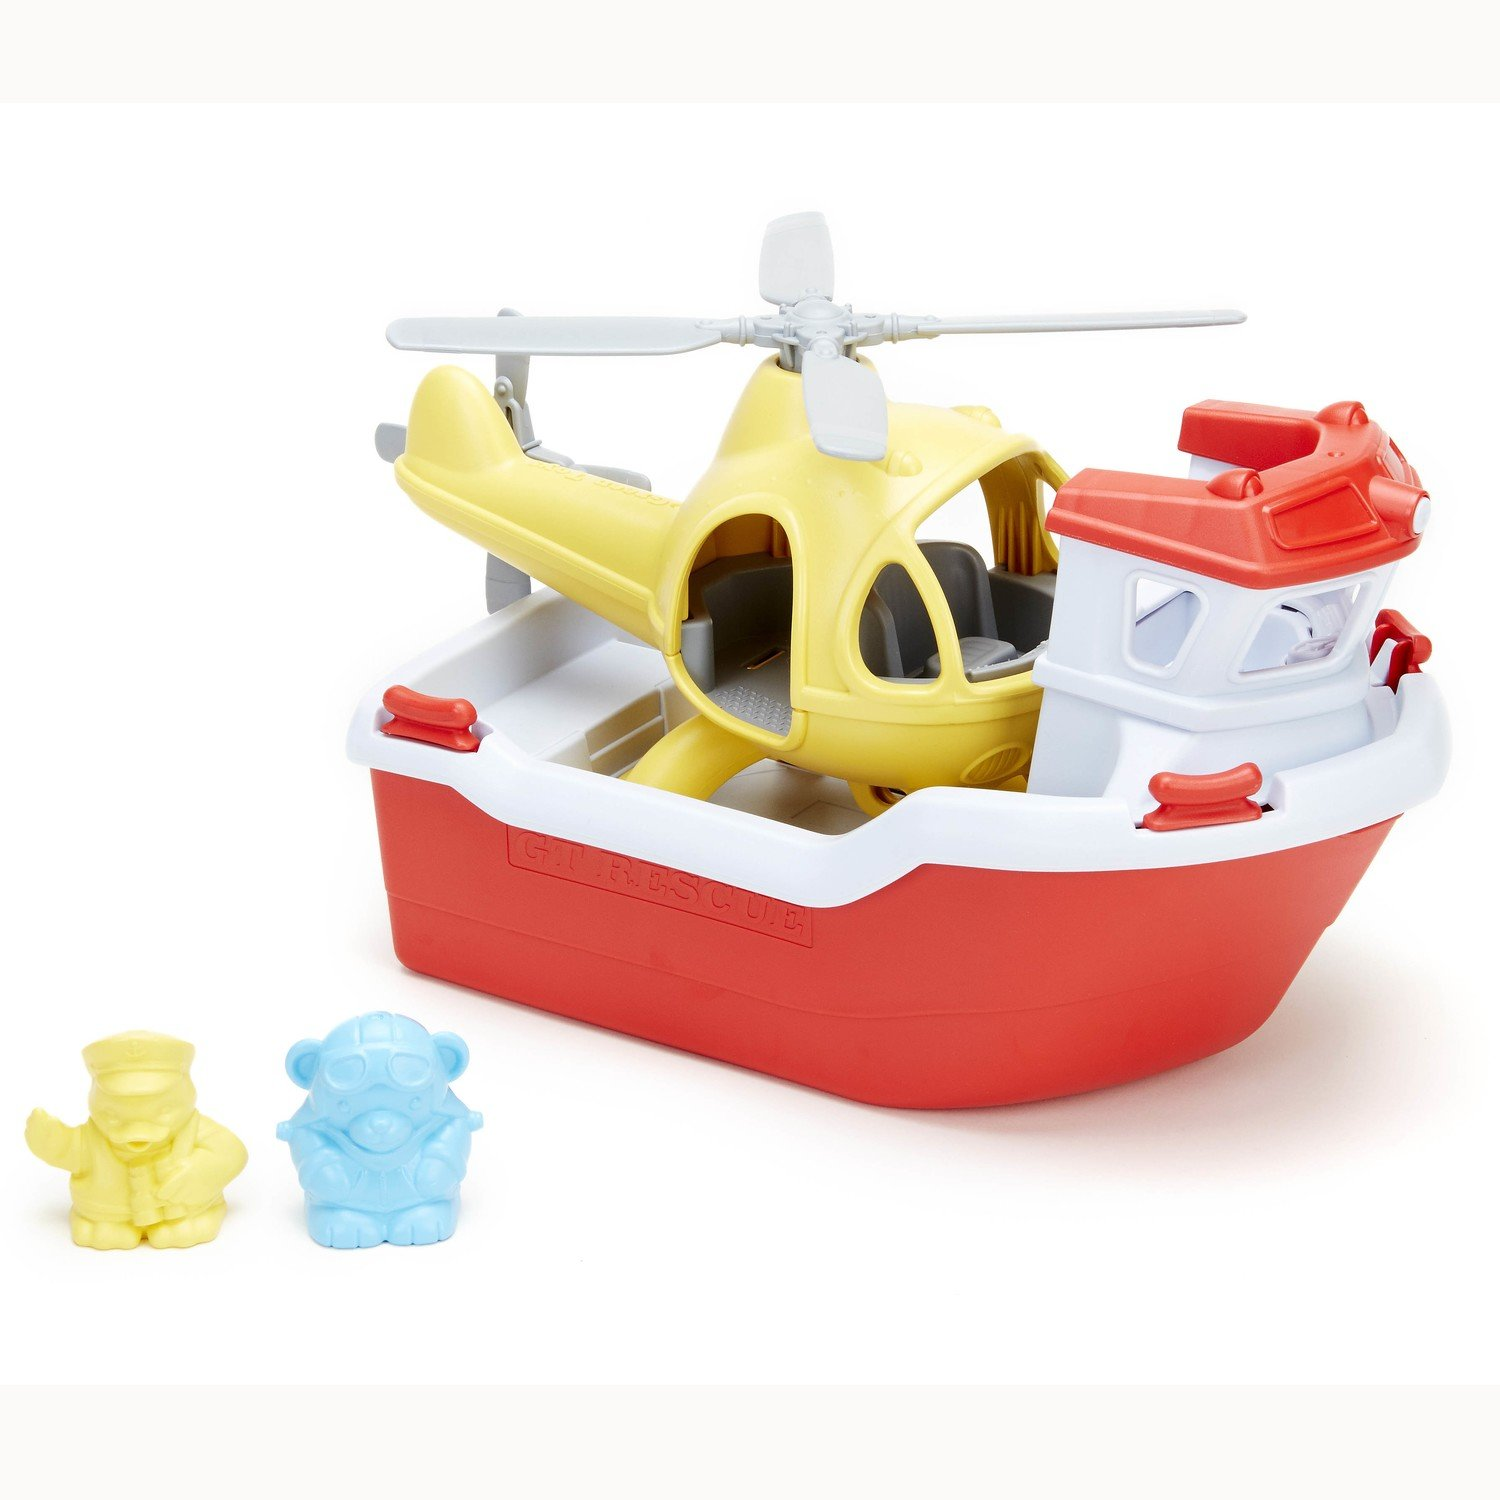 Rescue Boat with Helicopter (made from 100% recycled milk cartons)